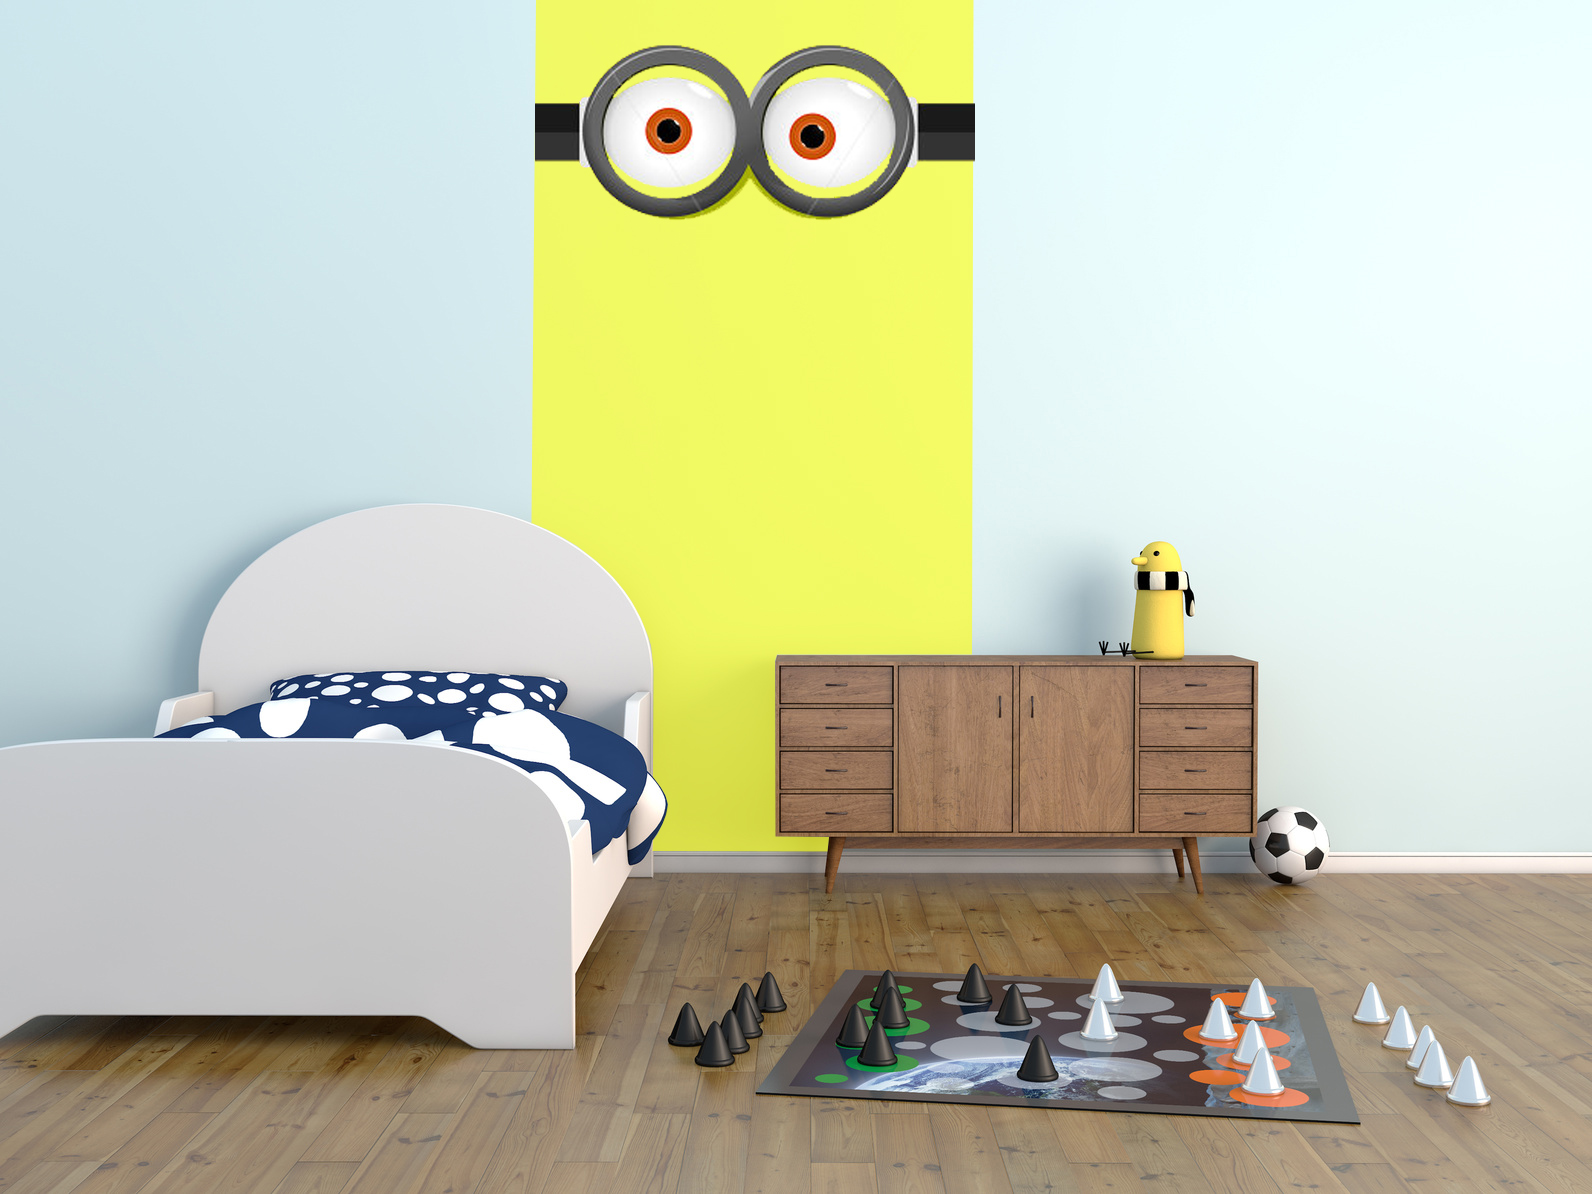 tendance ma d coration et la couleur jaune. Black Bedroom Furniture Sets. Home Design Ideas